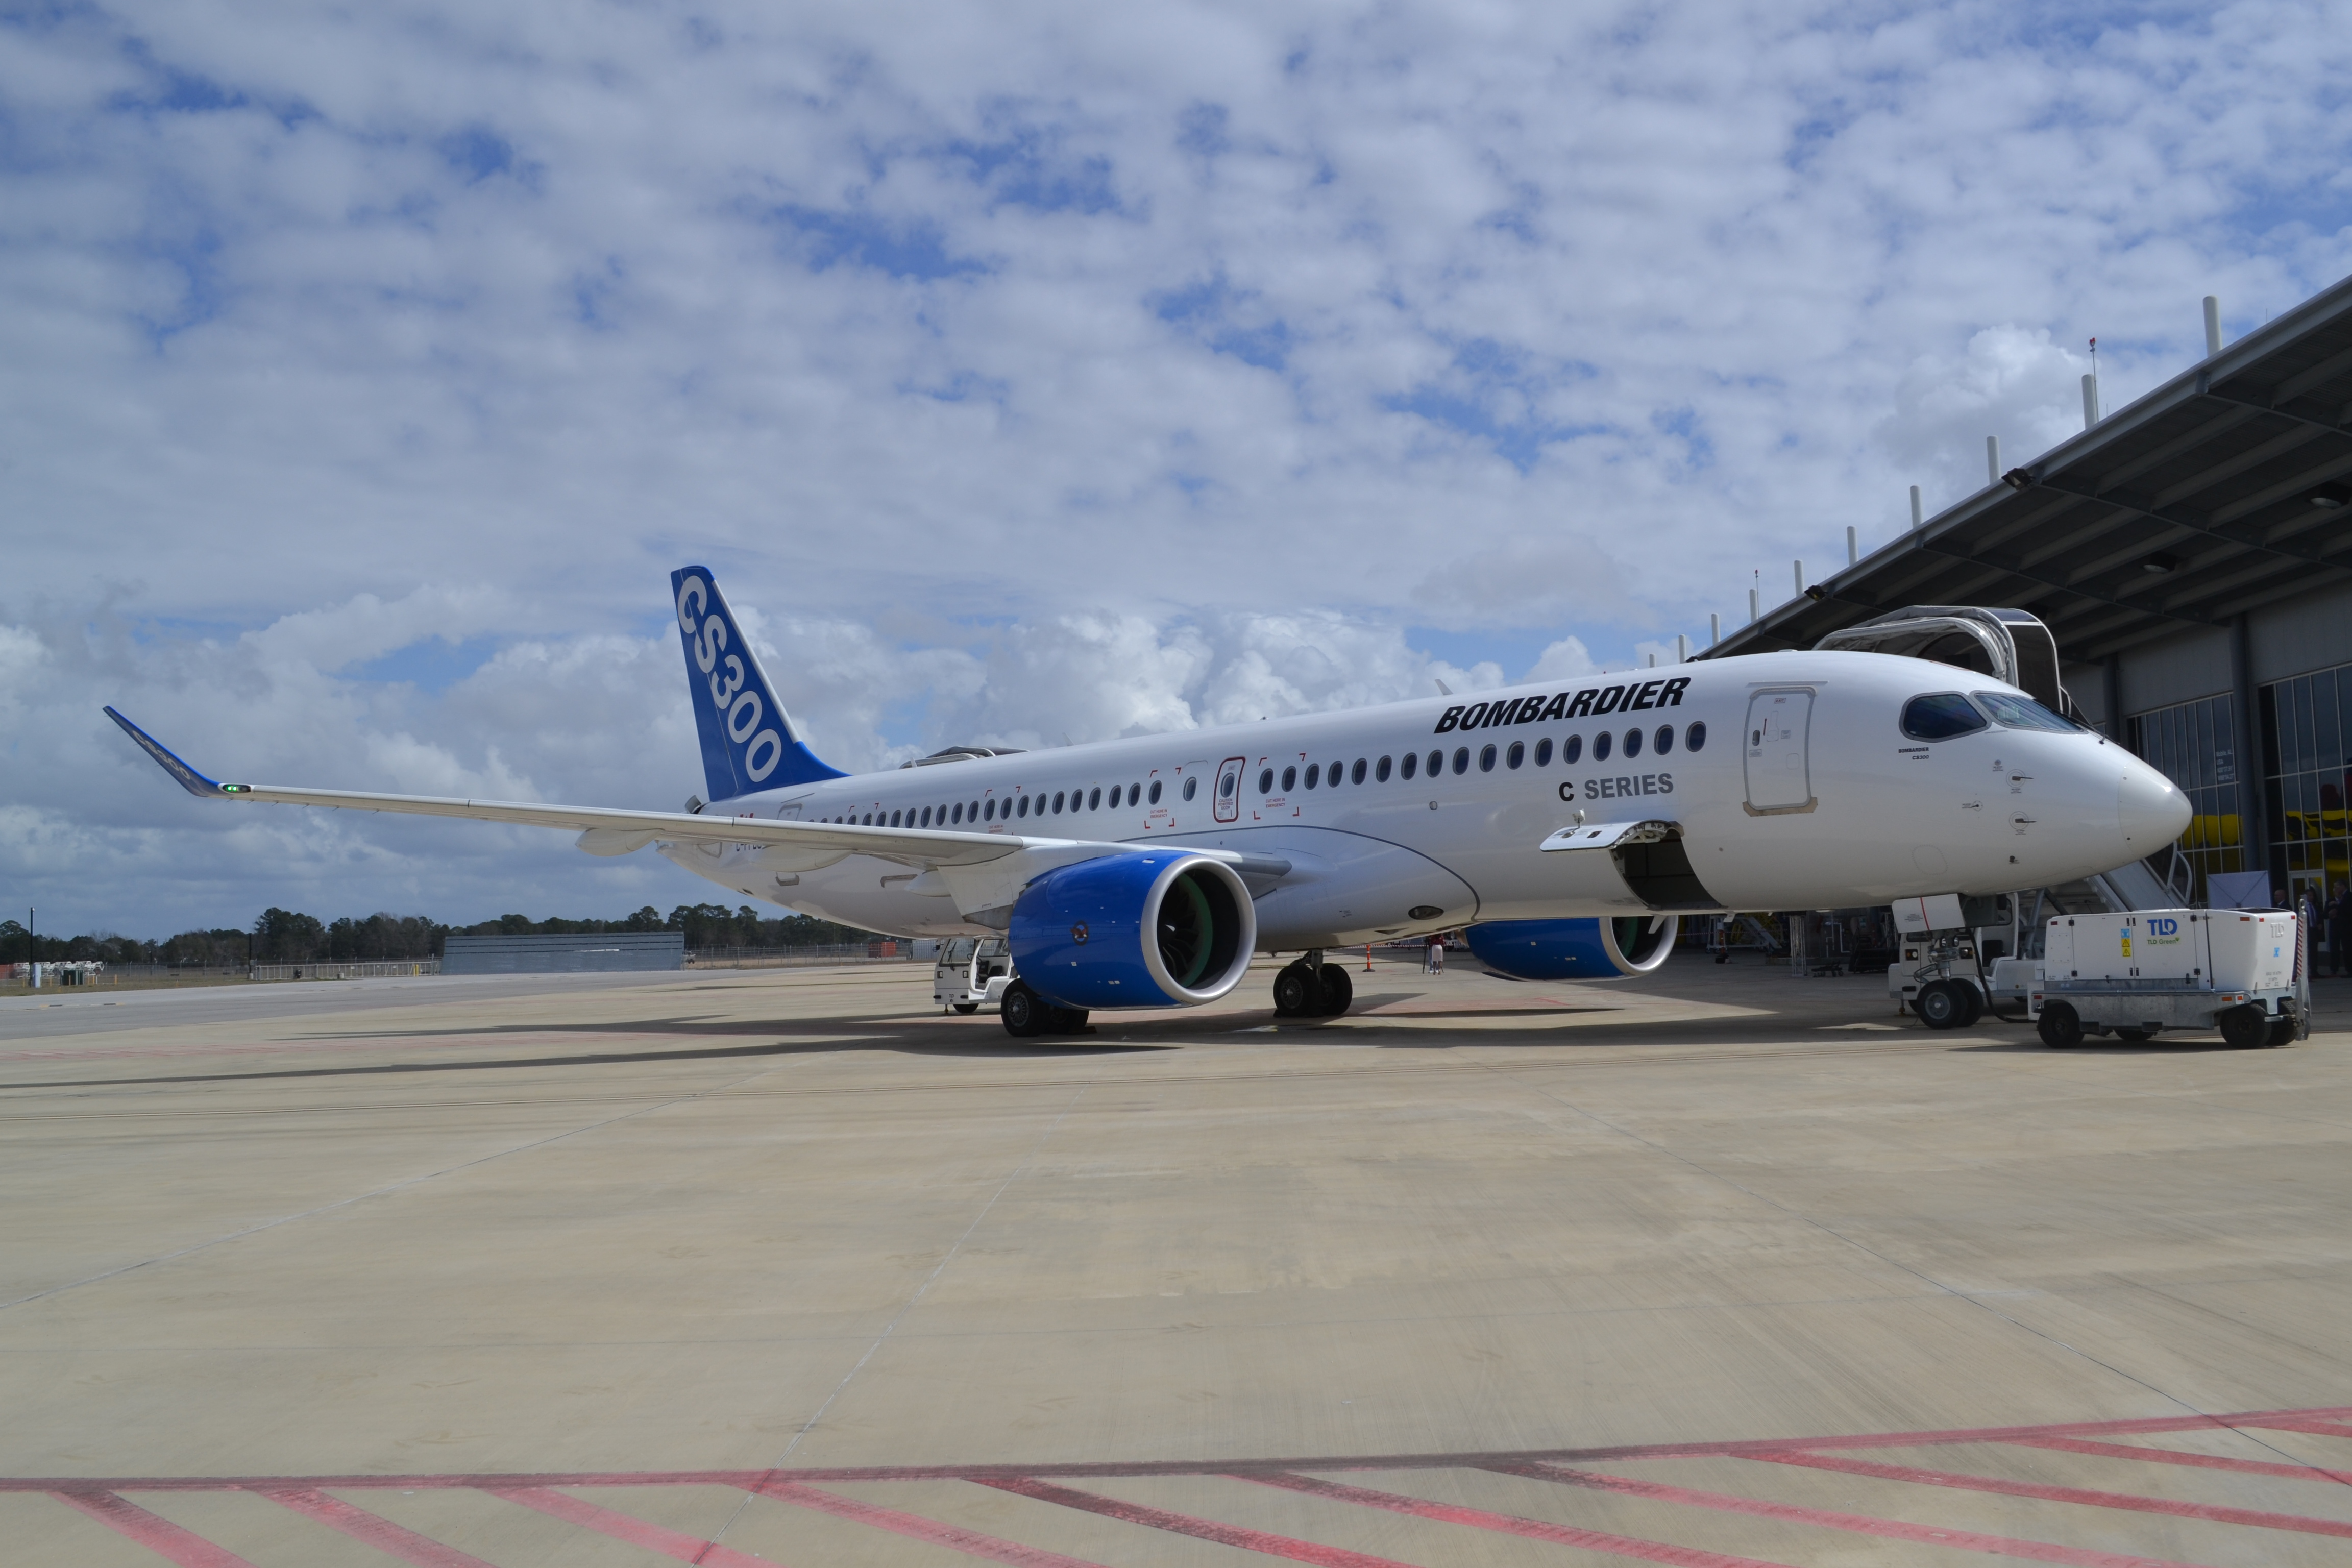 Production ramp-up at Airbus Alabama factory could add 600 jobs